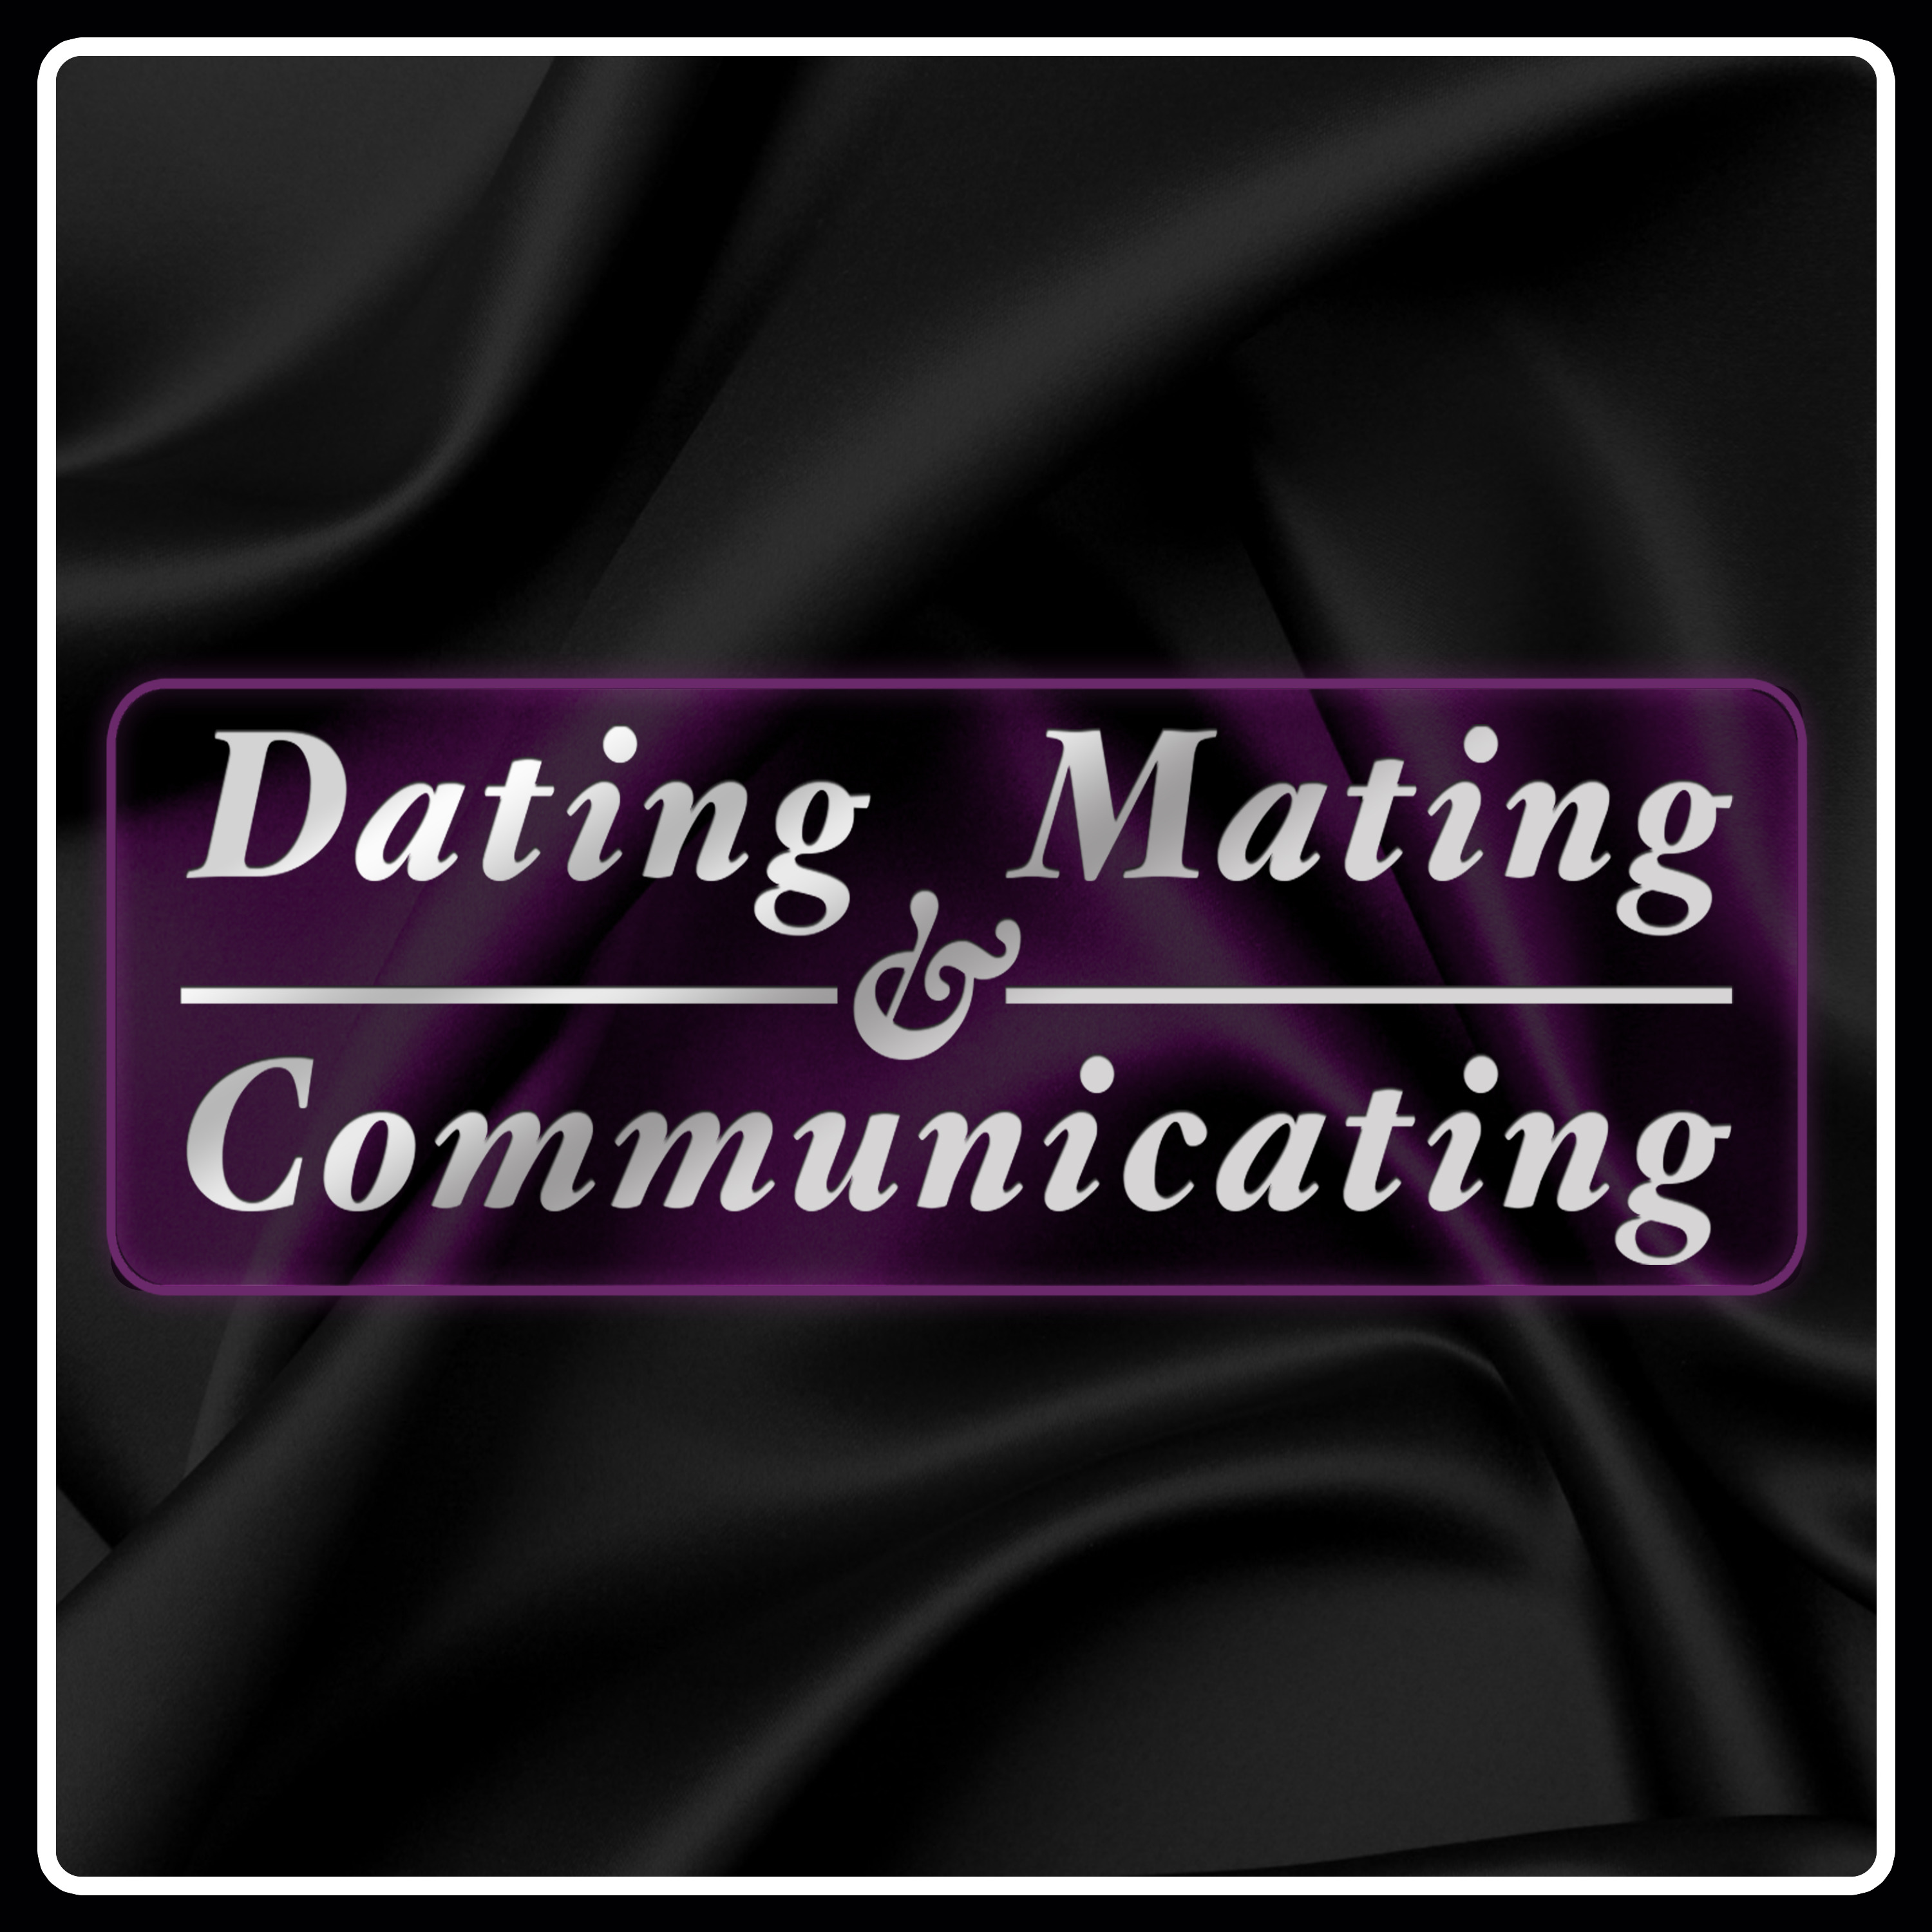 Dating, Mating, and Communicating